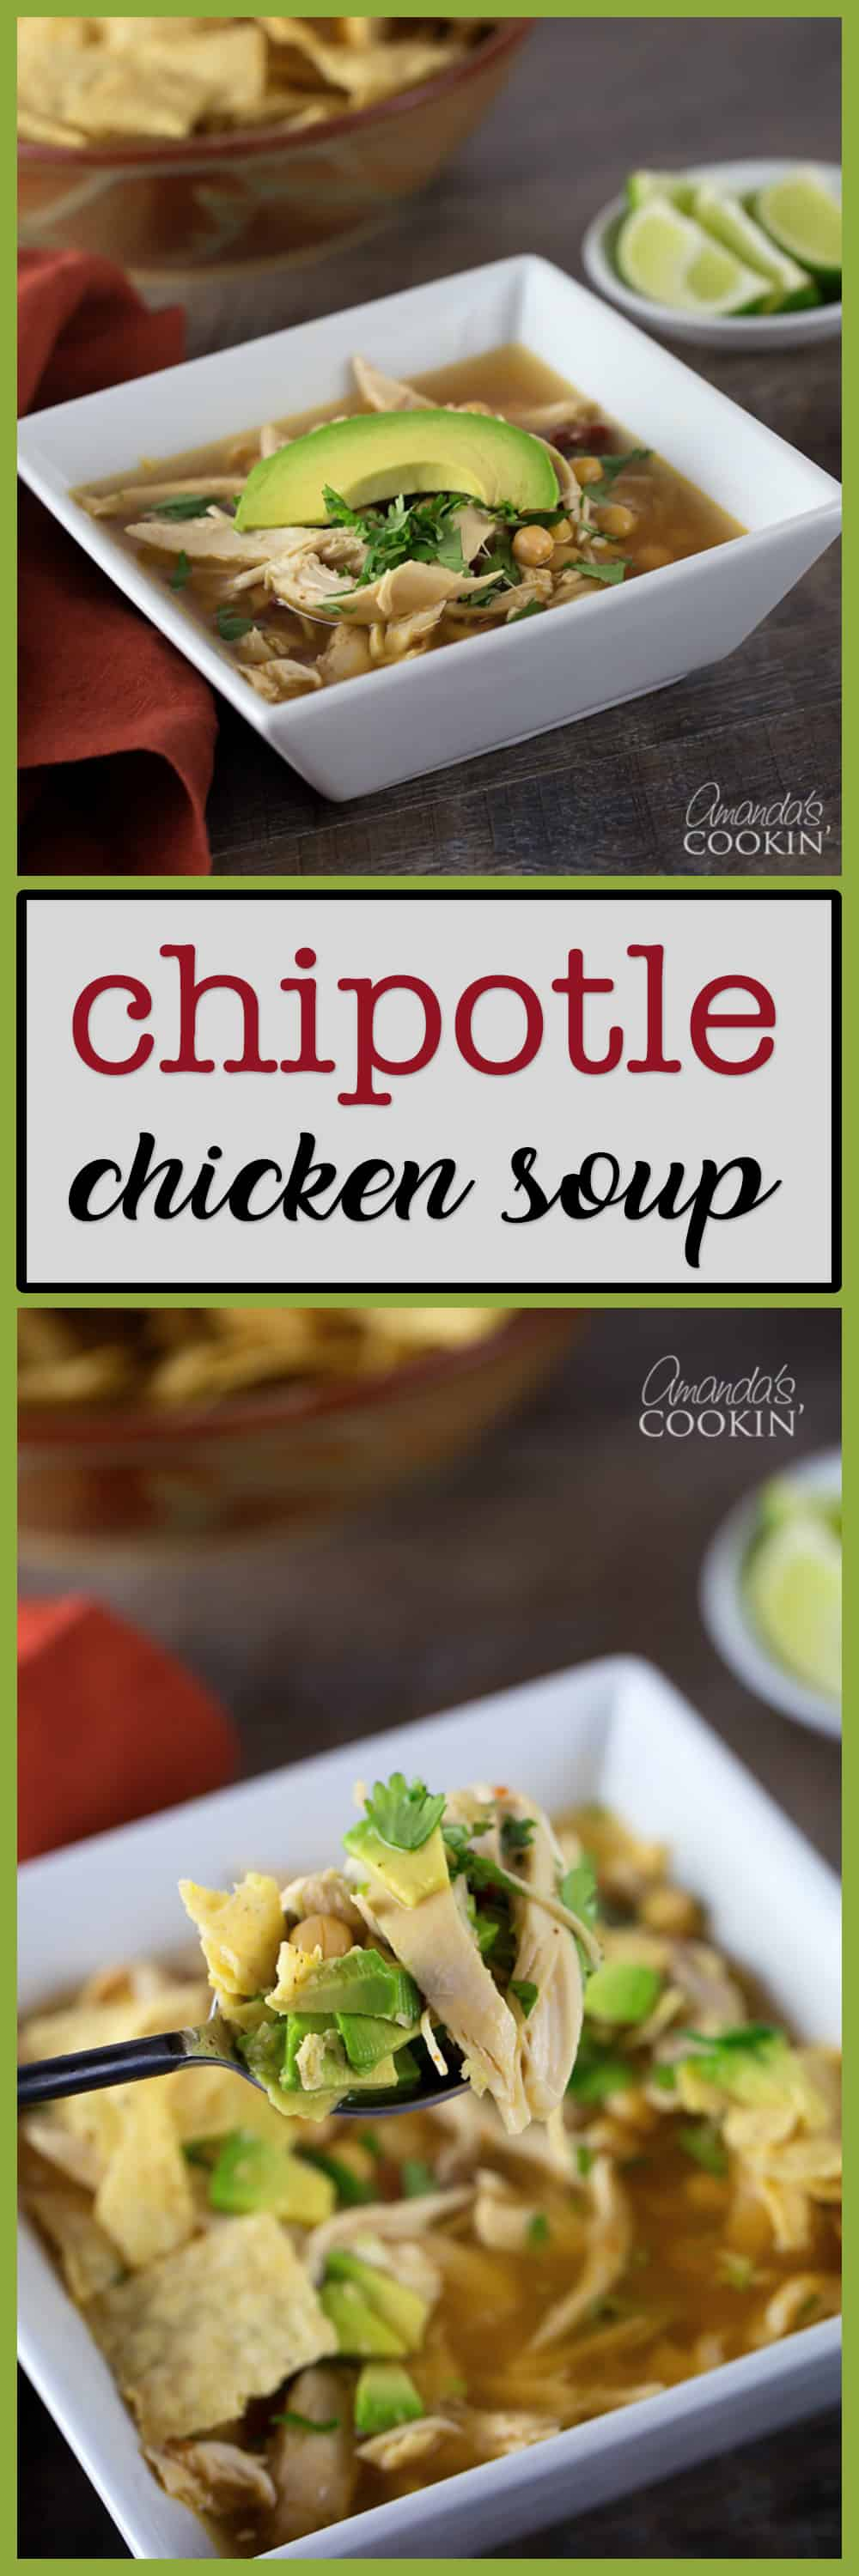 End your night with this Chipotle Chicken Soup to warm you up! The addition of chickpeas and avocado create a filling and delicious soup you'll love.